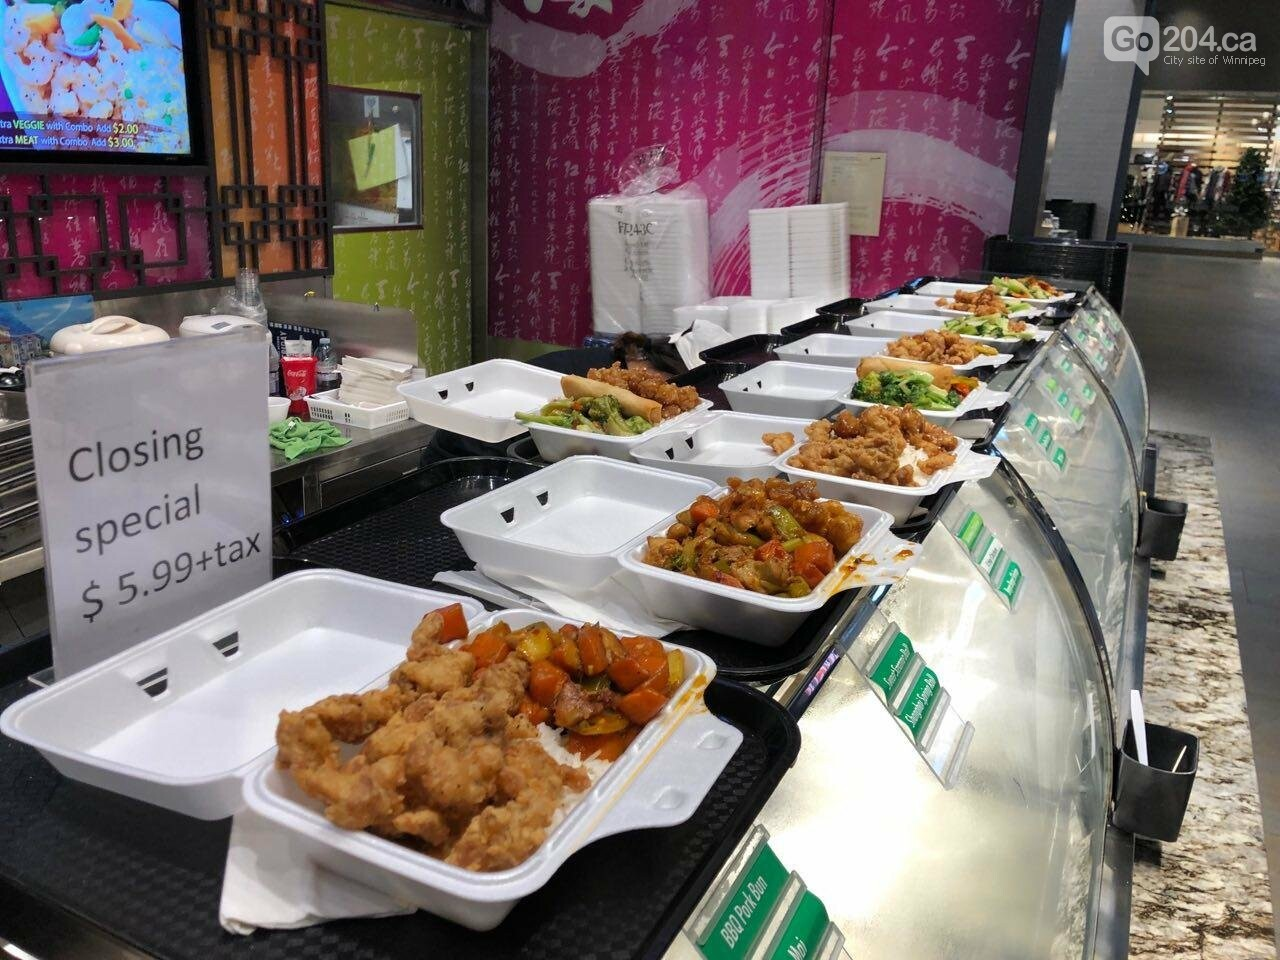 Closing special on Chinese food!, photo-1